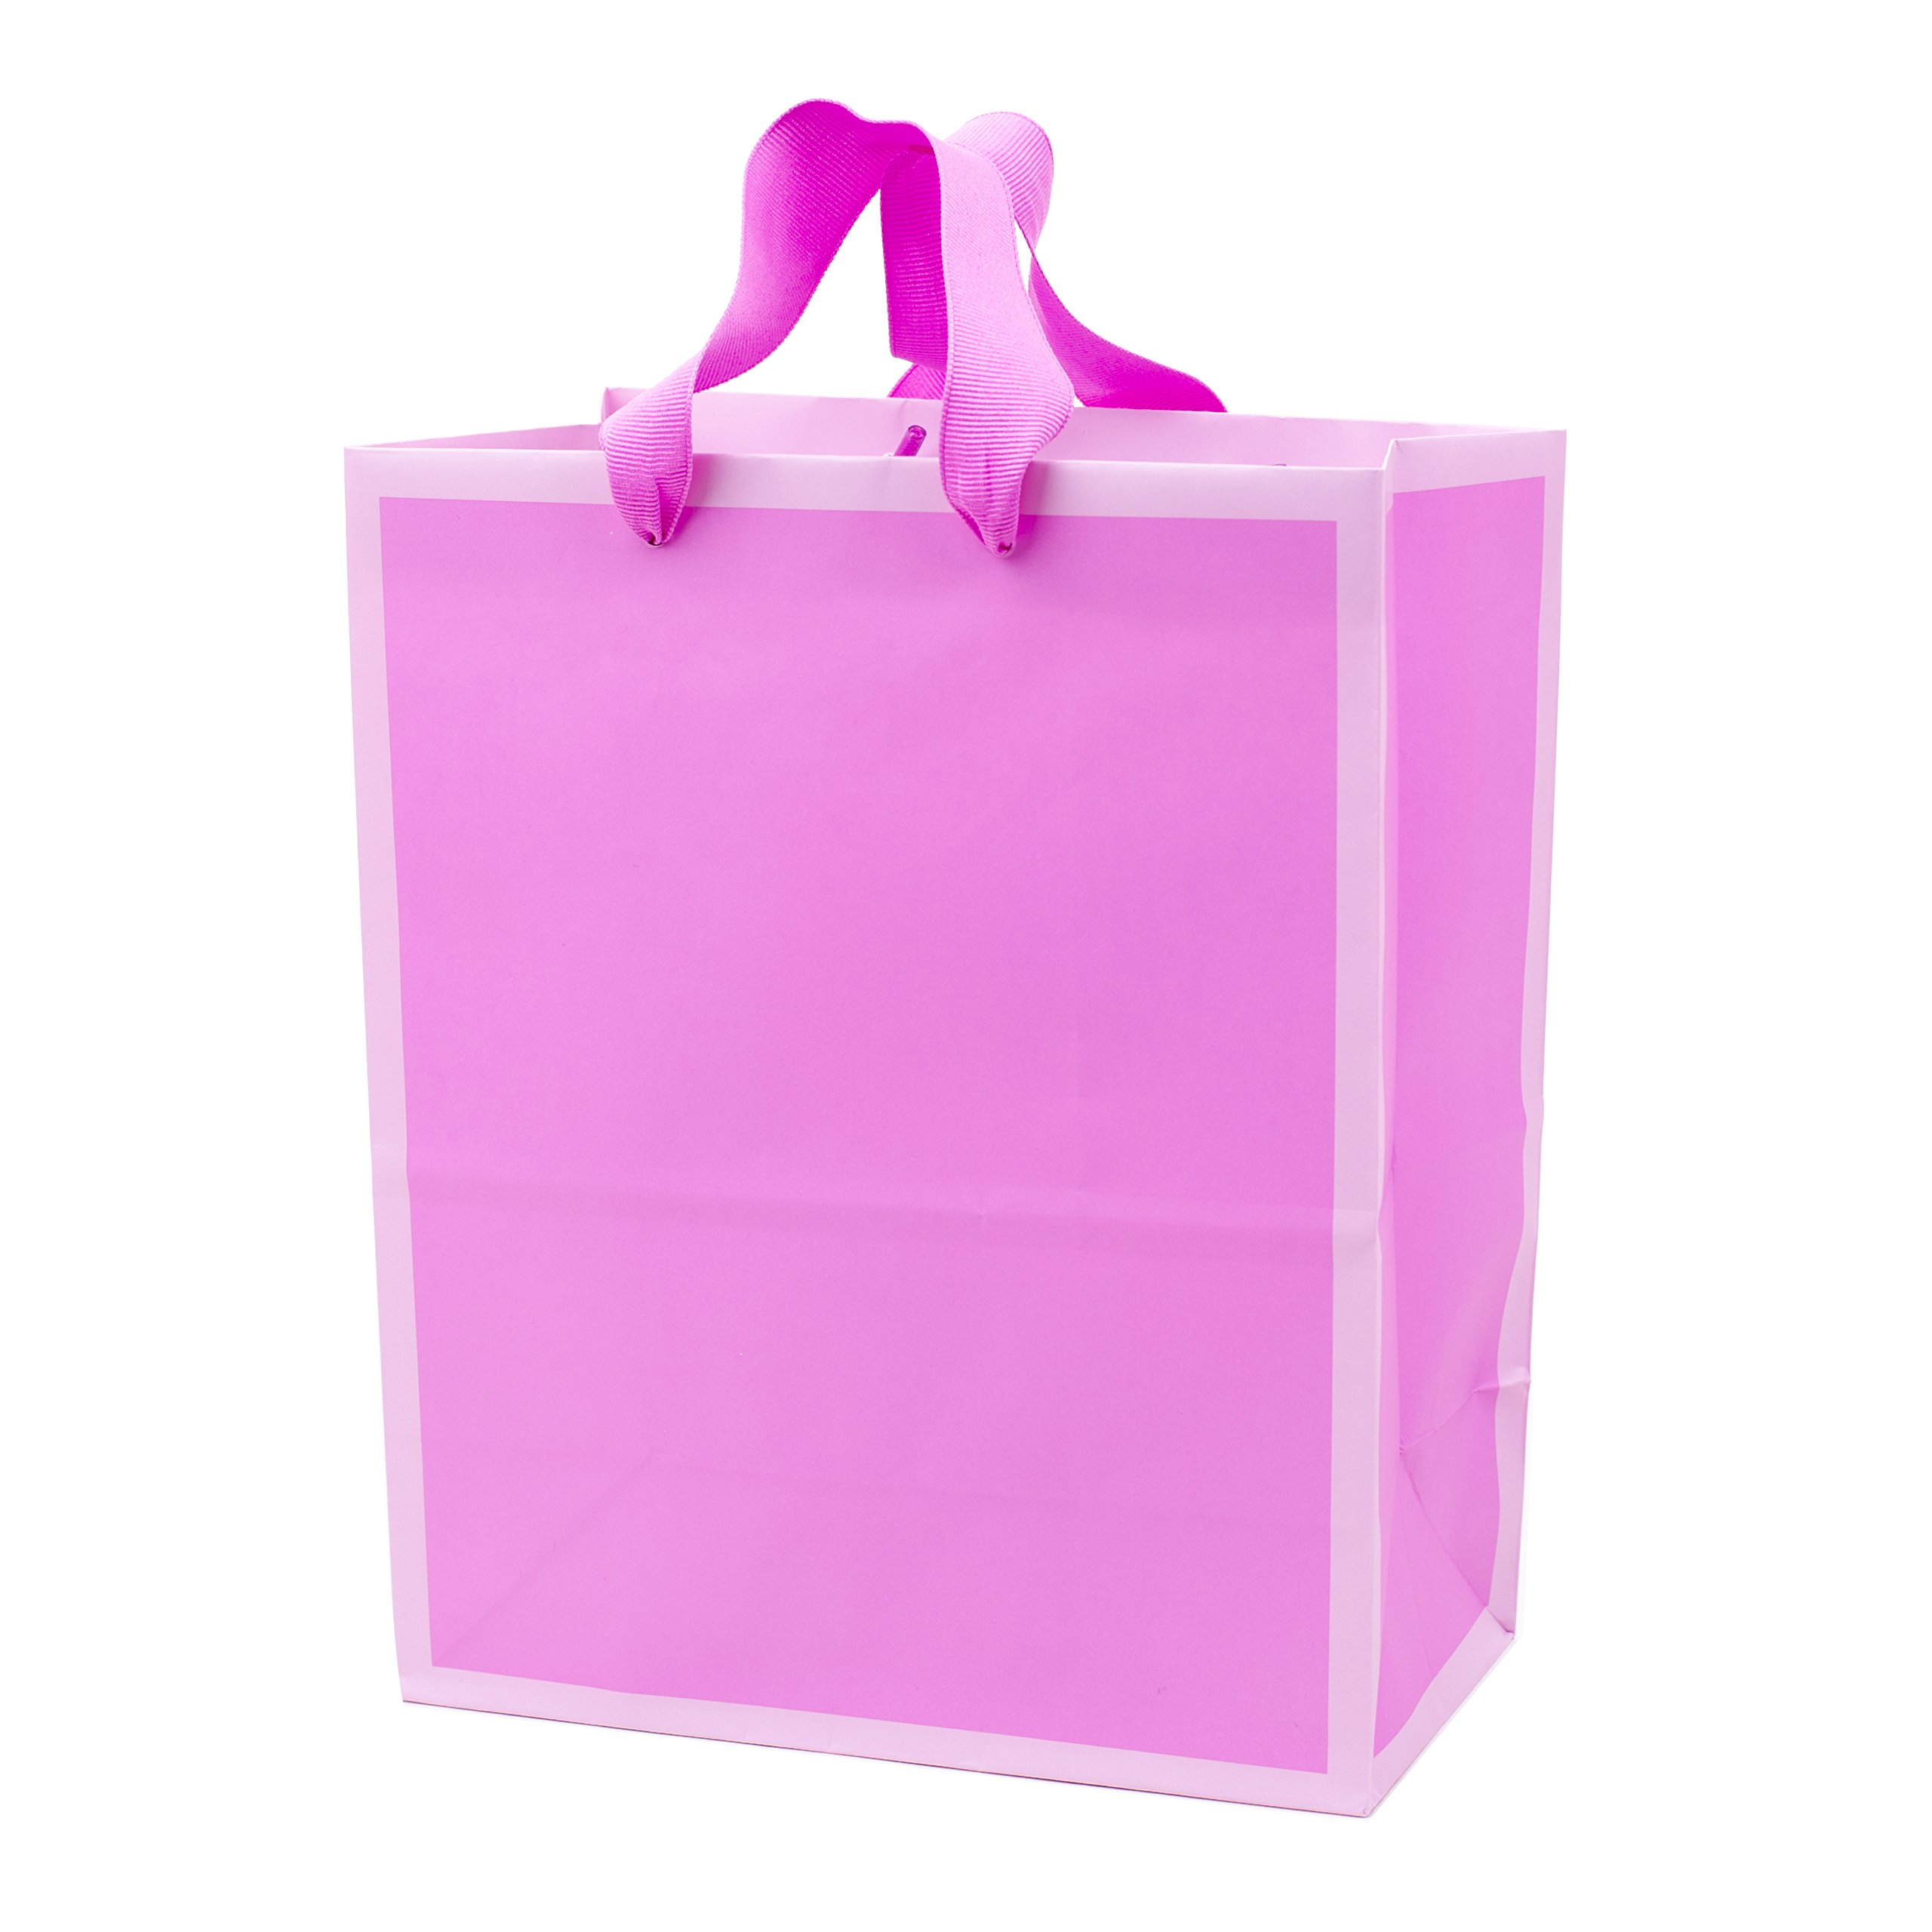 """Hallmark 9"""" Medium Gift Bag (Pink-on-Pink Duotone) for Birthdays, Baby Showers, Bridal Showers, Valentines Day, Sweetest Day or Any Occasion"""